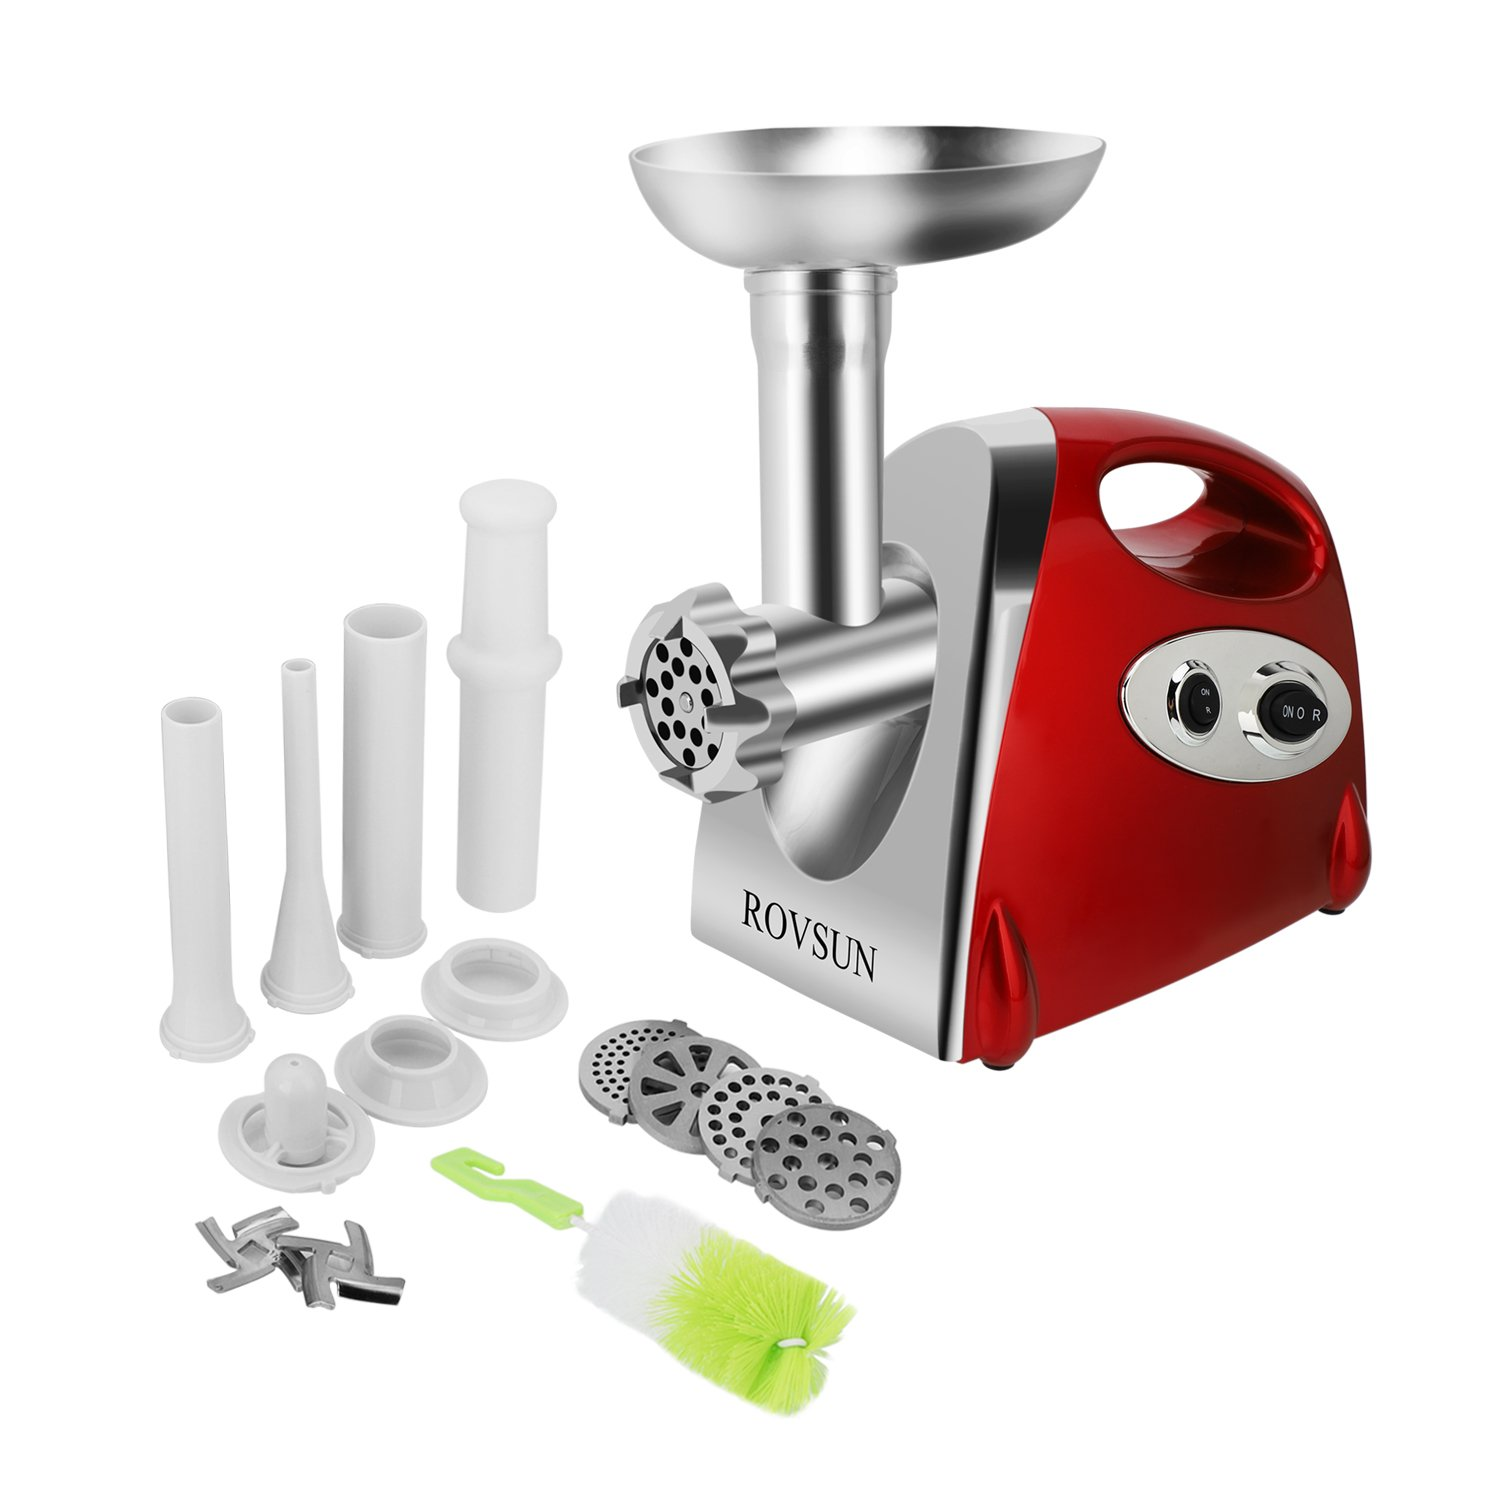 ROVSUN Electric Meat Grinder, 800W Portable Mincer Sausage Stuffer Food Processor with 4 Grinding Plates - 3 Sausage Tubes - 2 Stainless Steel Blades -Kubbe Attachment & Brush, Home Use by ROVSUN